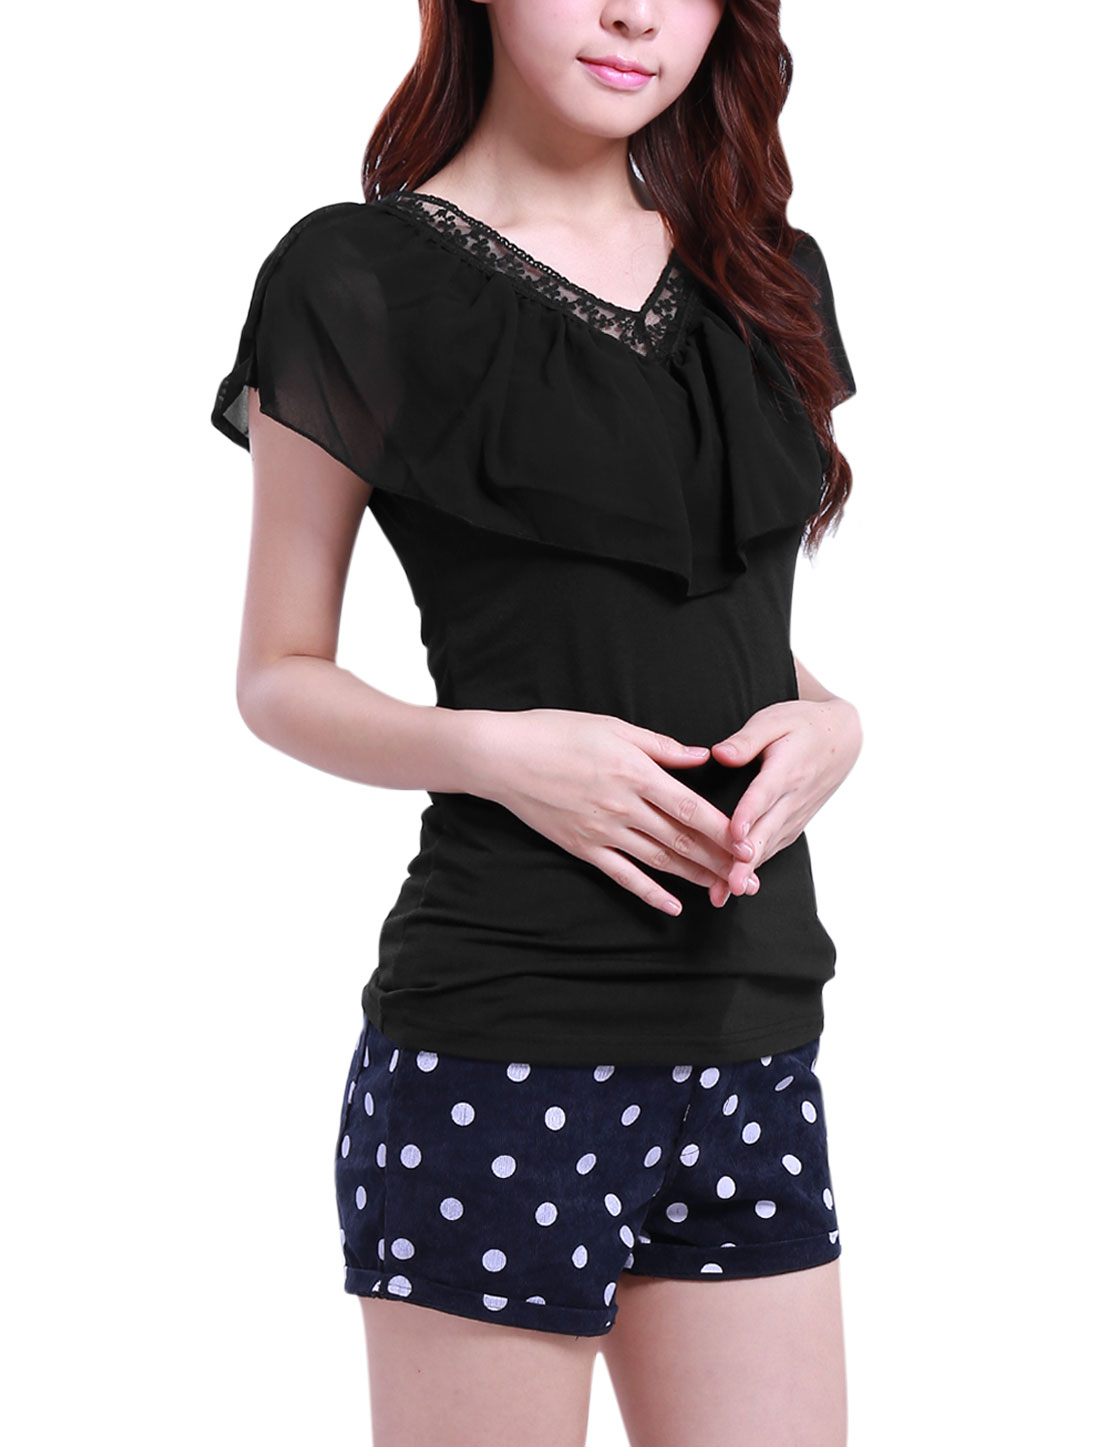 Double V Neck Stretch Black Embellished Tee XS for Lady